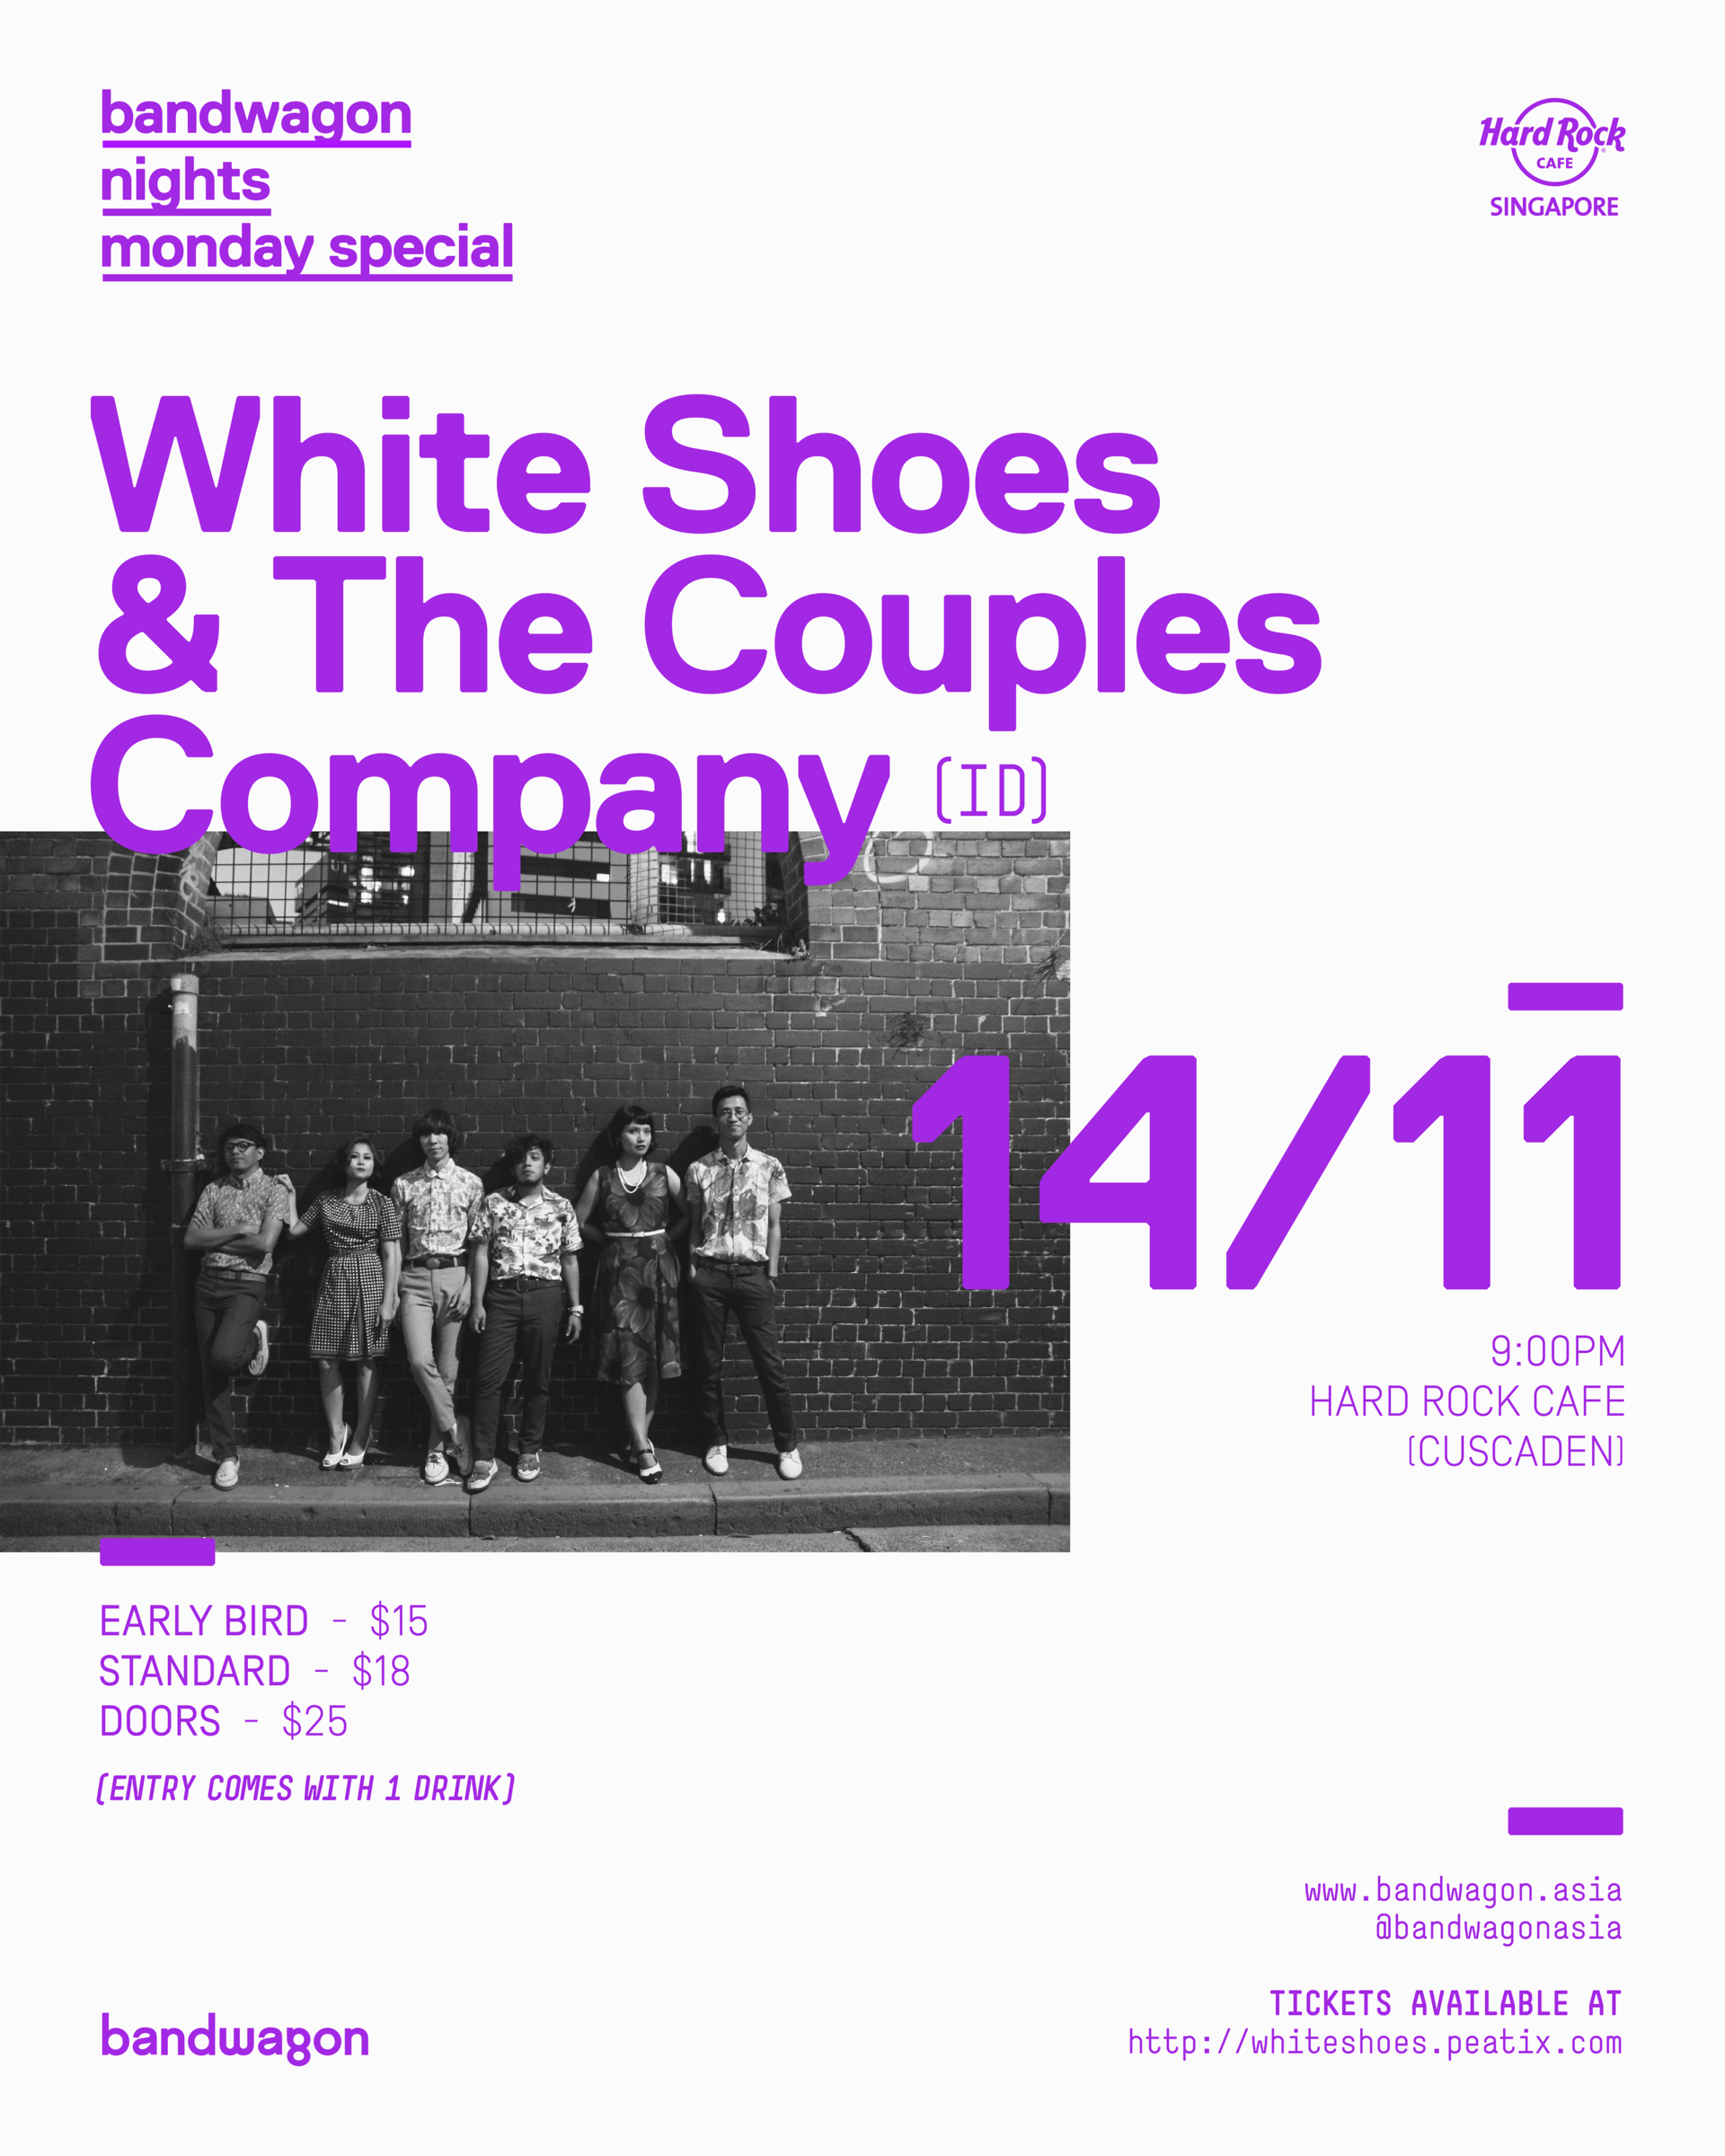 White Shoes & The Couples Company, Bandwagon Nights Monday Special